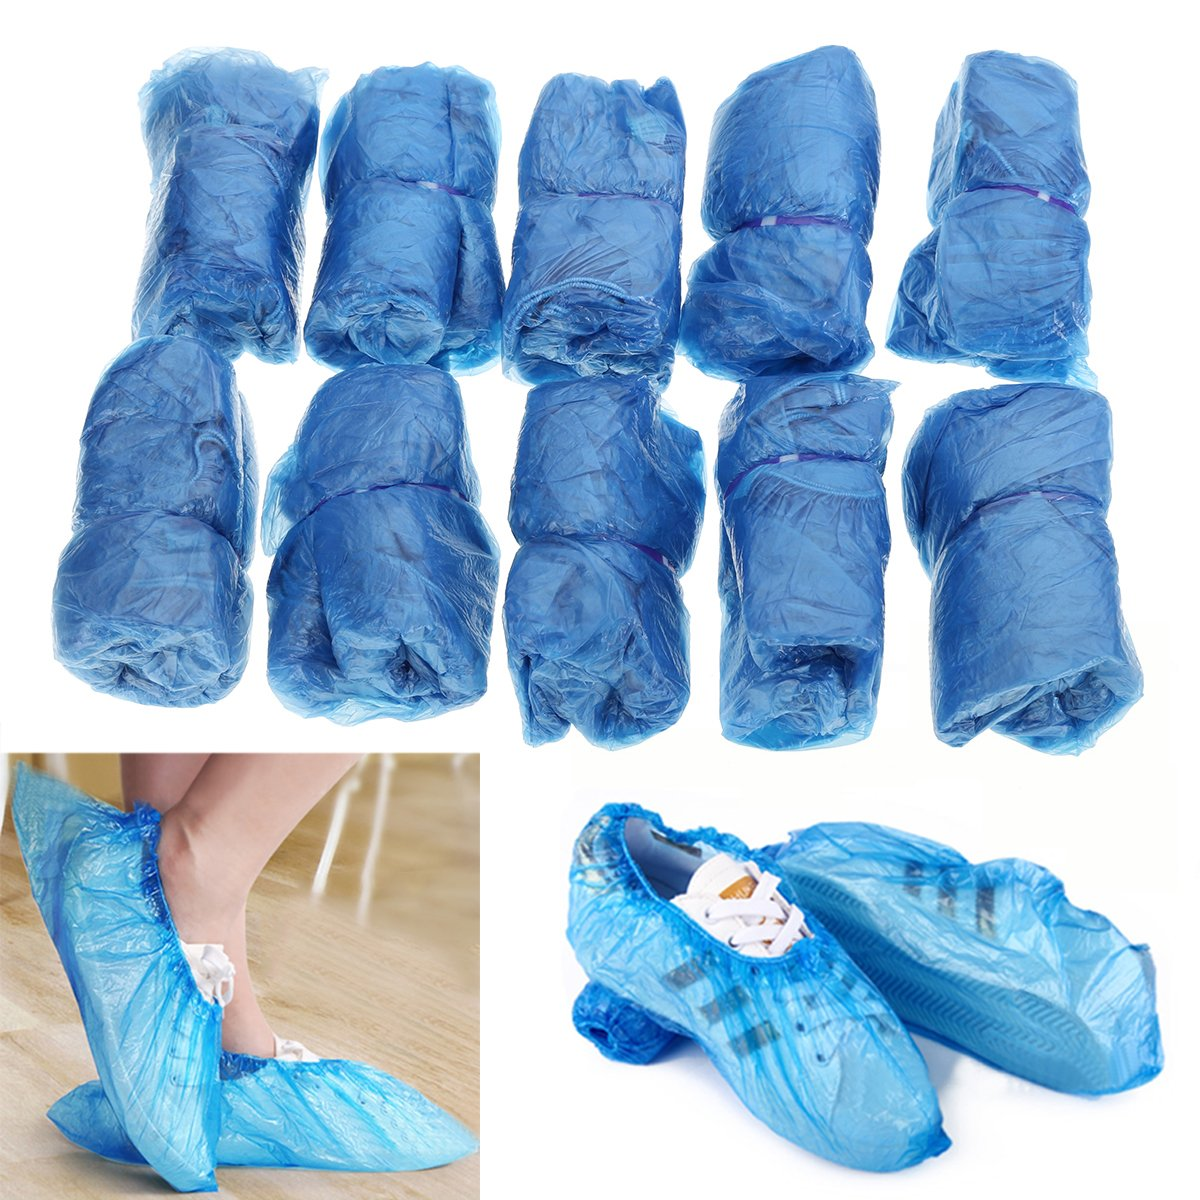 100Pcs Blue Plastic Disposable Overshoes Carpet Protector Shoes Cover Mayitr